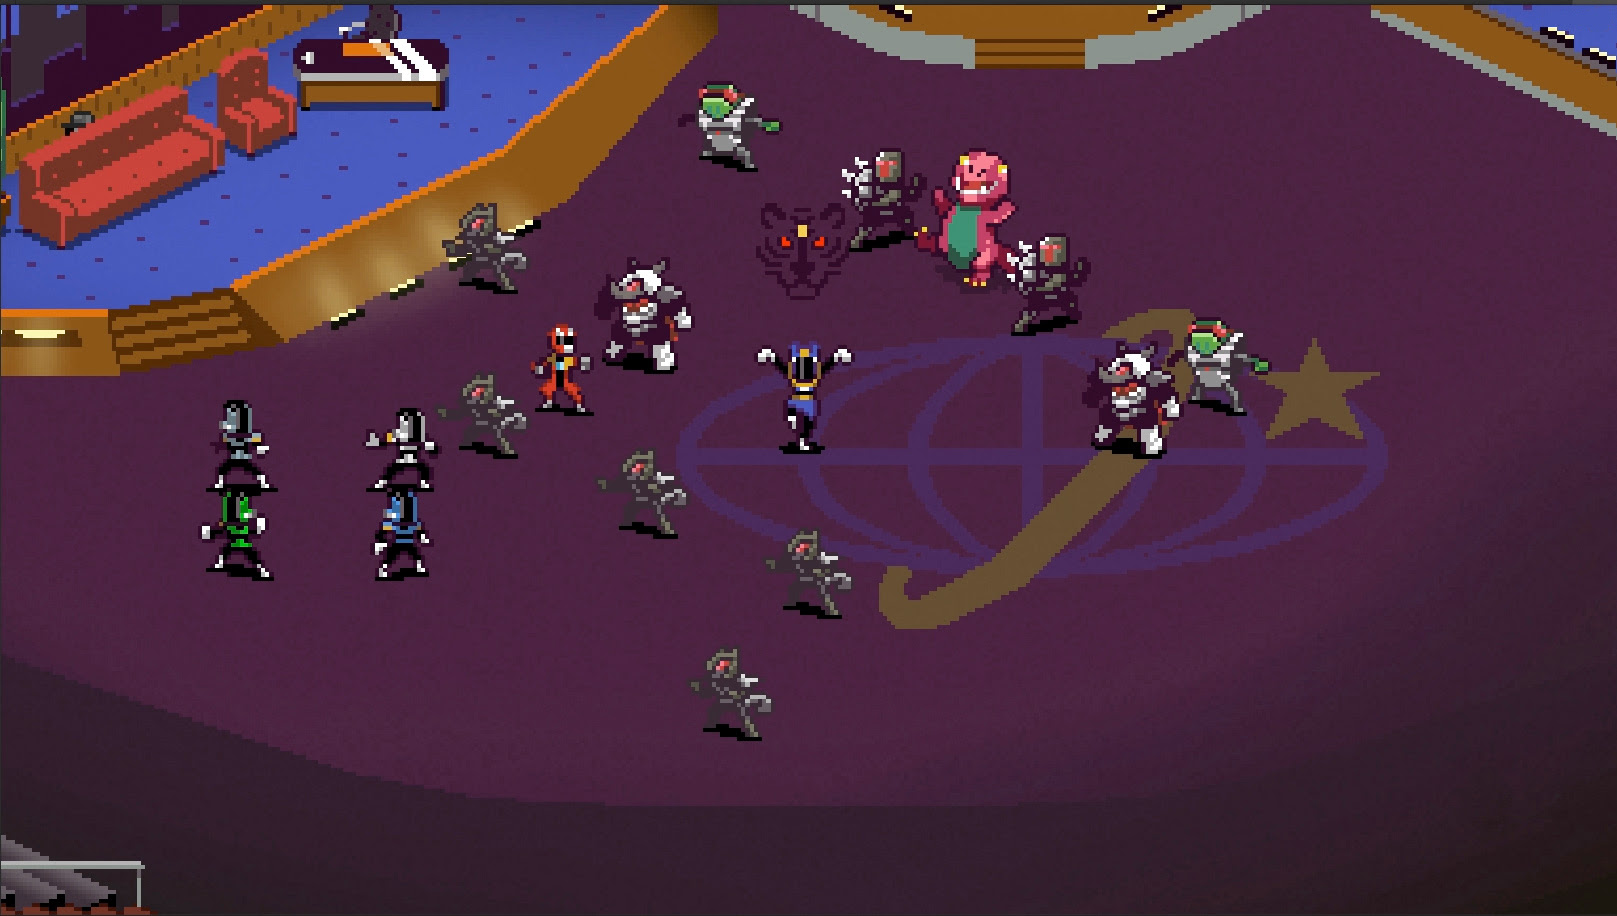 Free 'director's cut' update coming to Chroma Squad screenshot